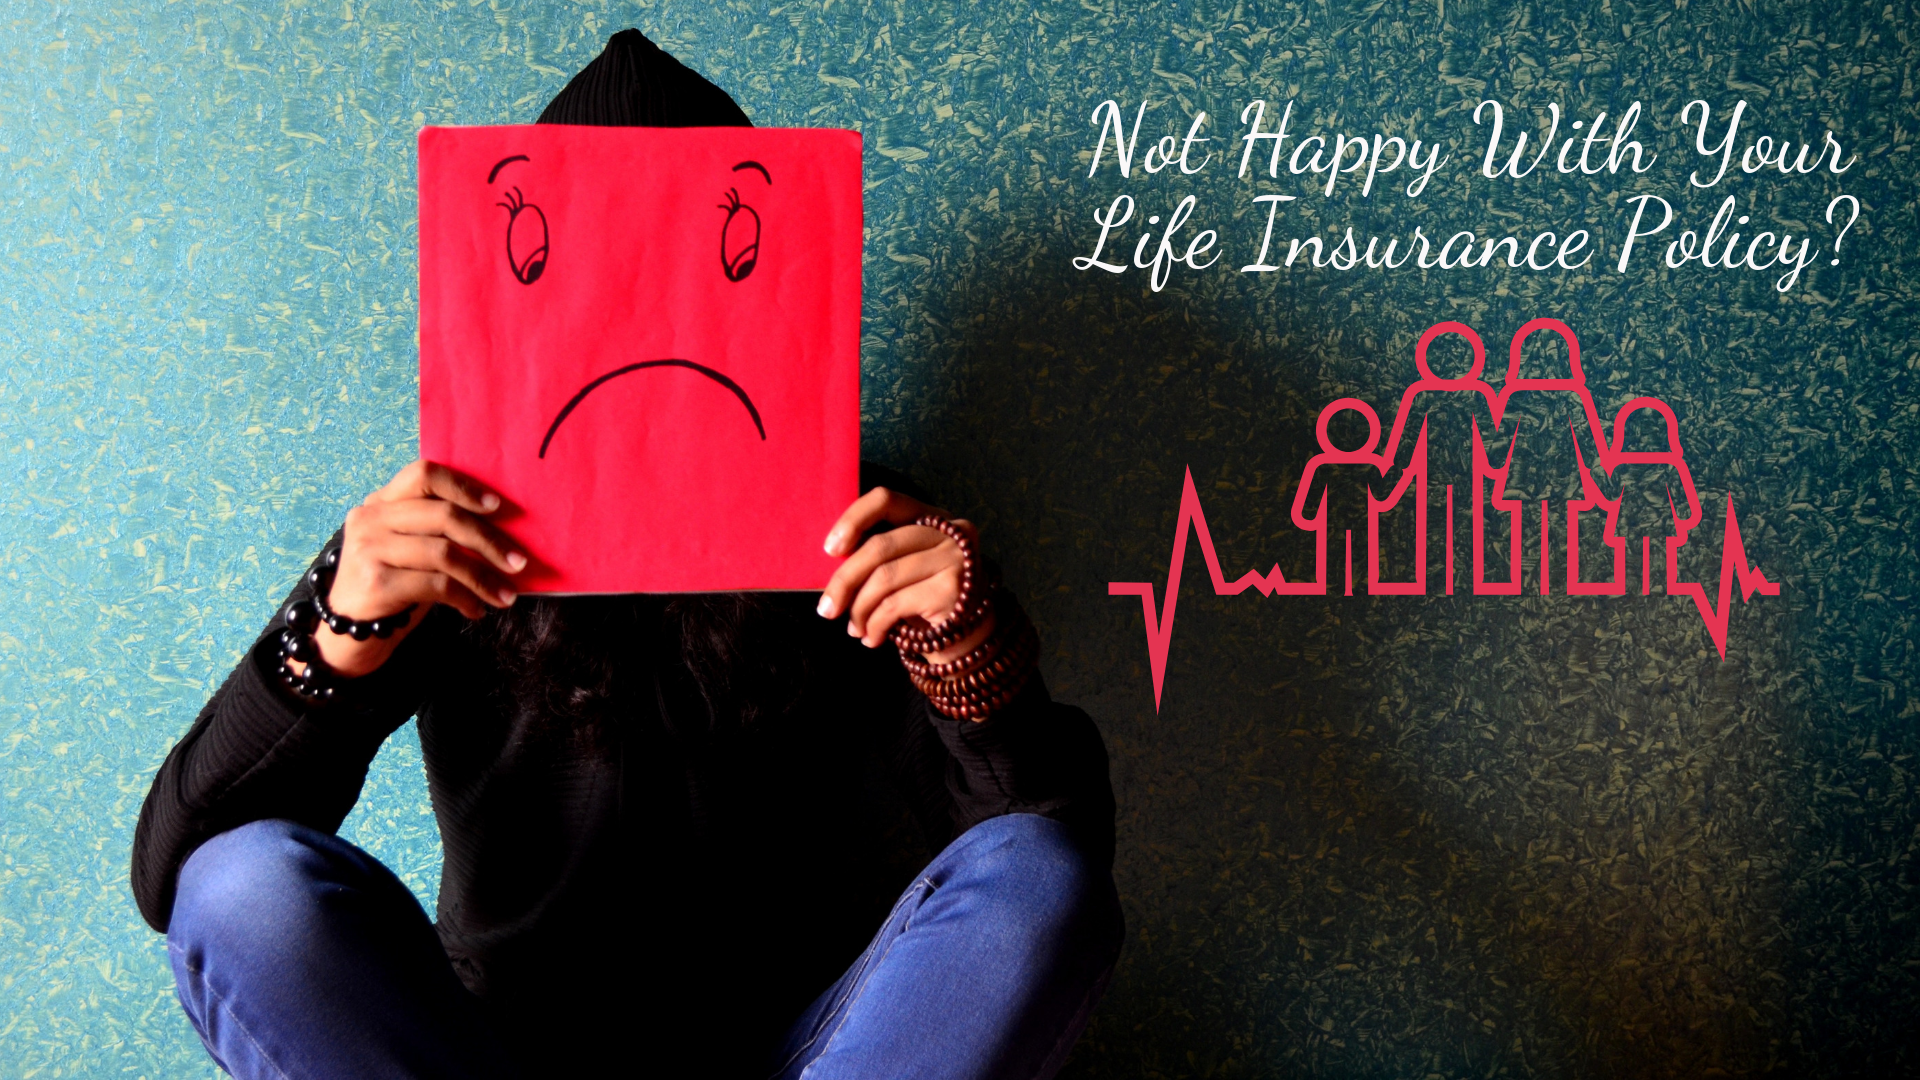 5 Things To Do If You are Not Happy With Your Life Insurance Policy